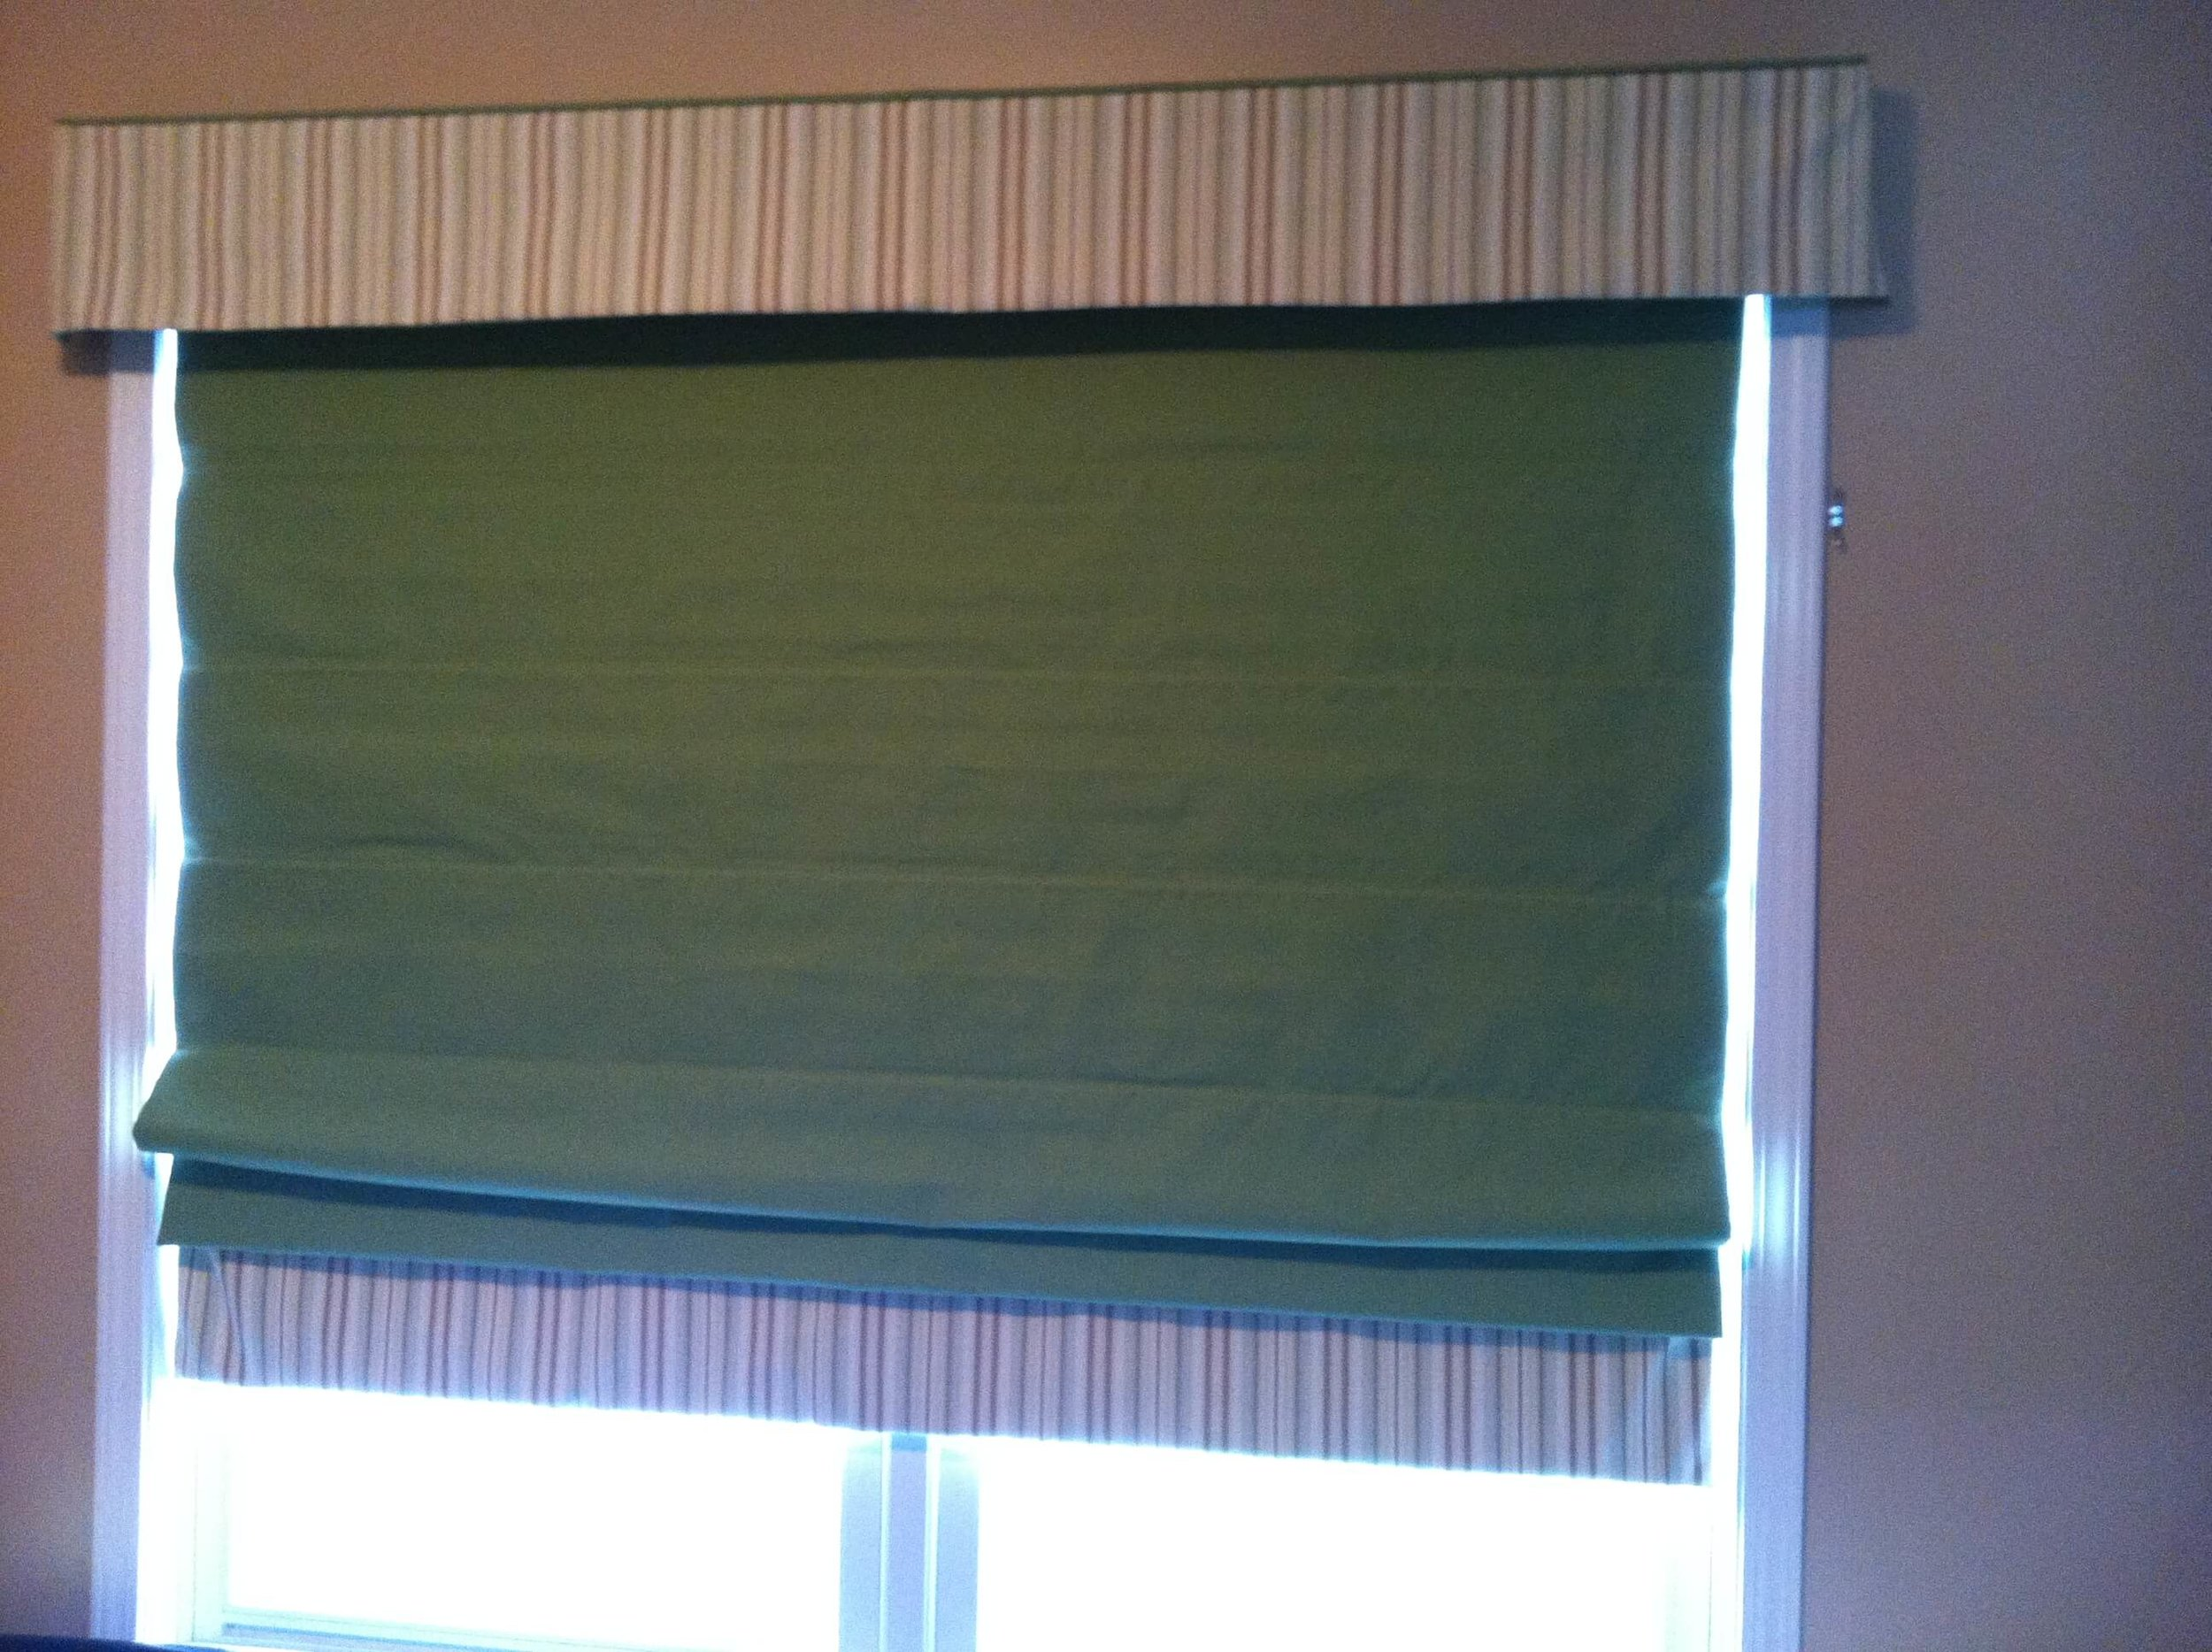 custom-window-treatments-coverings-middleton-wisc.JPG